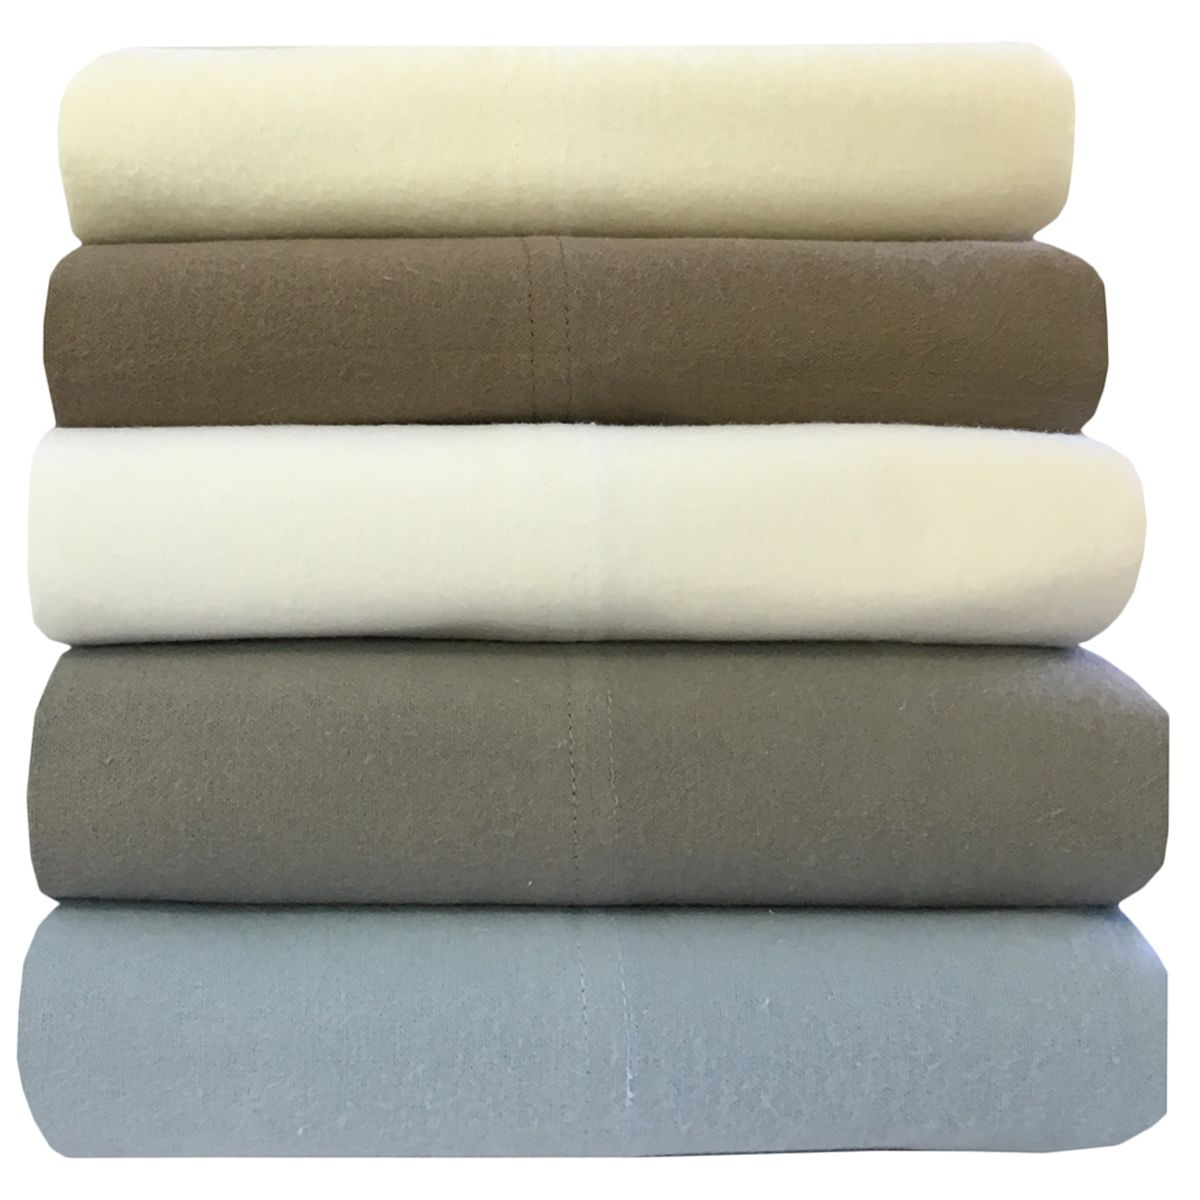 Split King Adjustable Sheet Set Heavyweight 100 Cotton